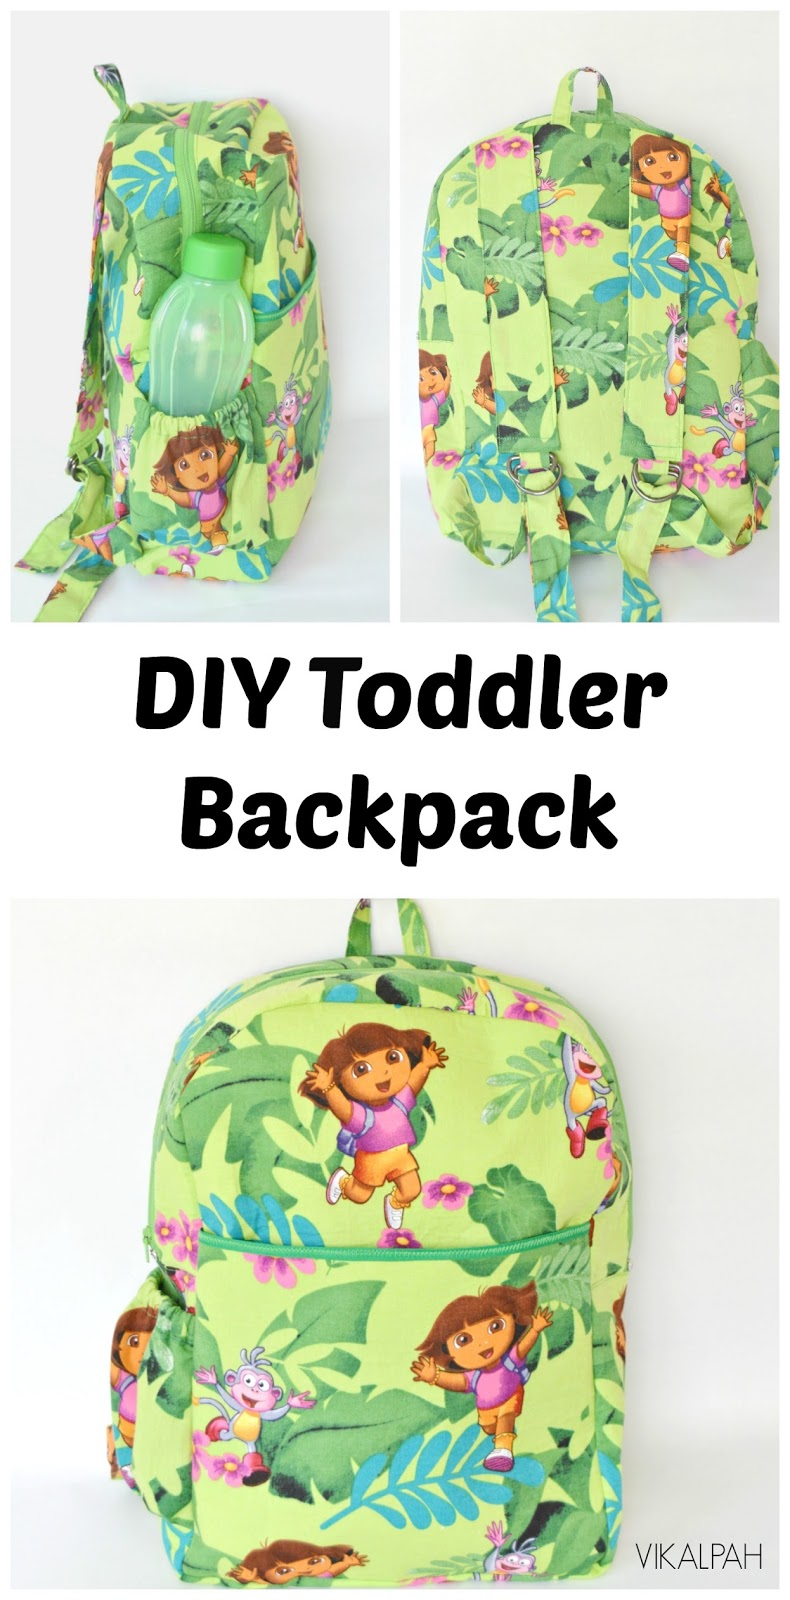 DIY Toddler Backpack